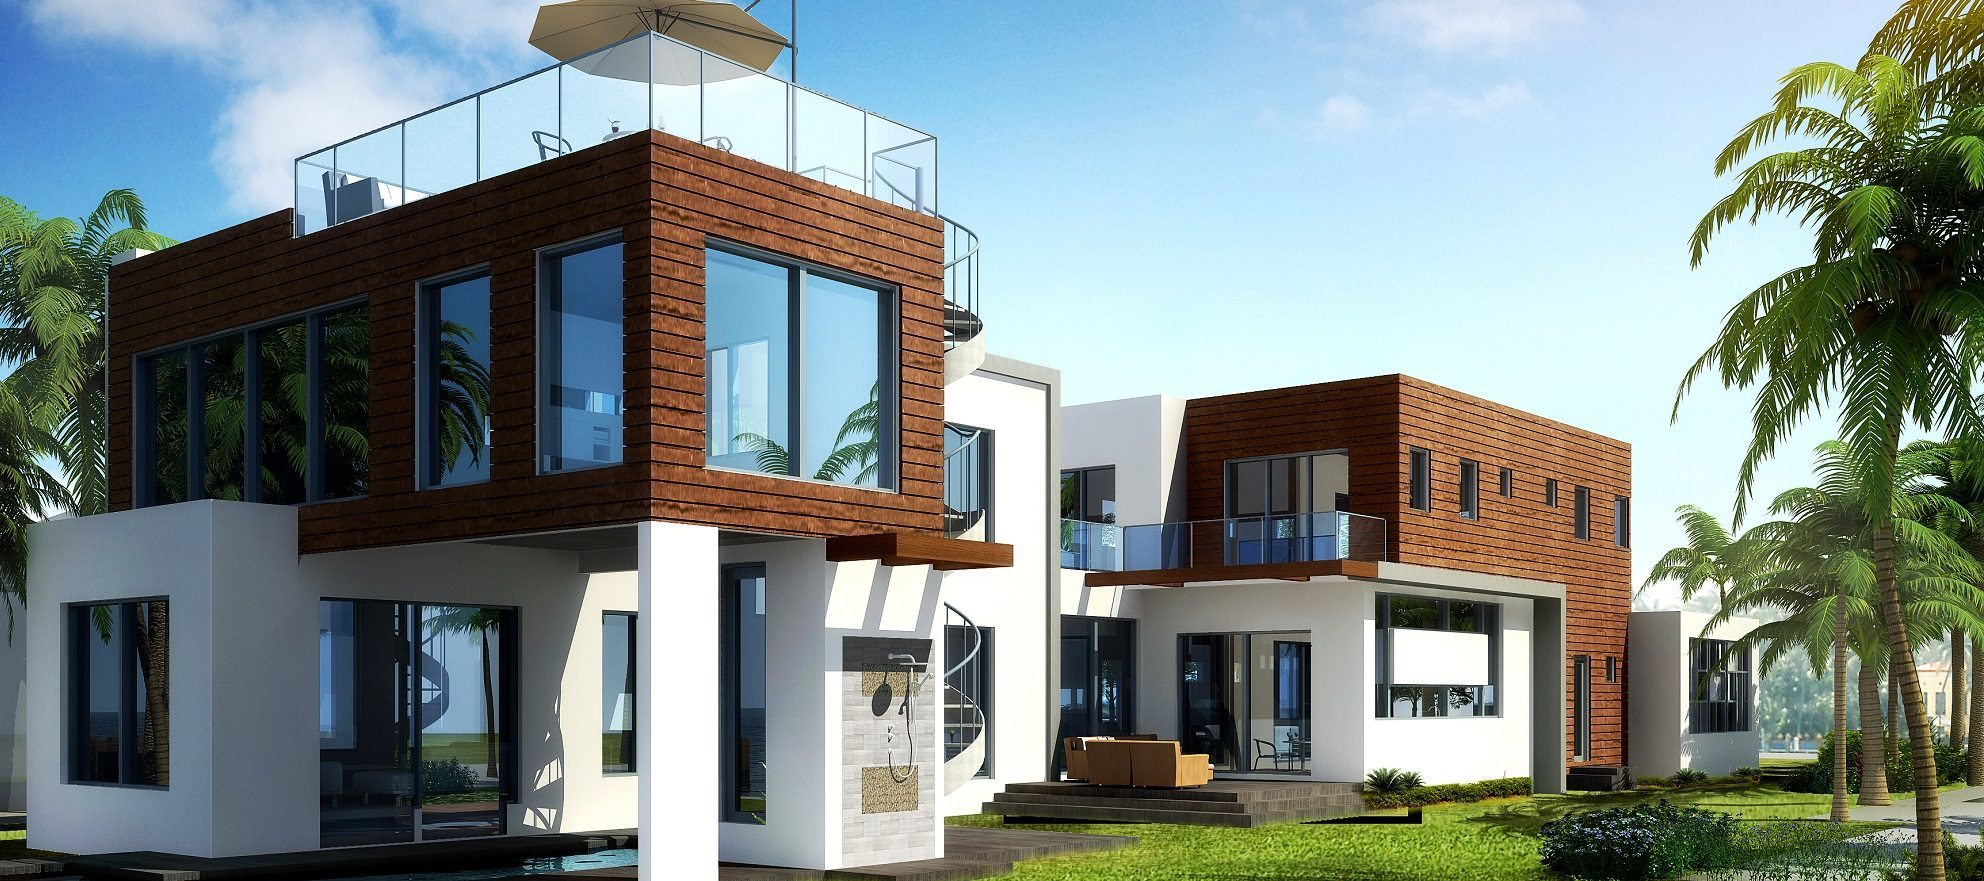 Development of the day: modern luxury along Biscayne Bay